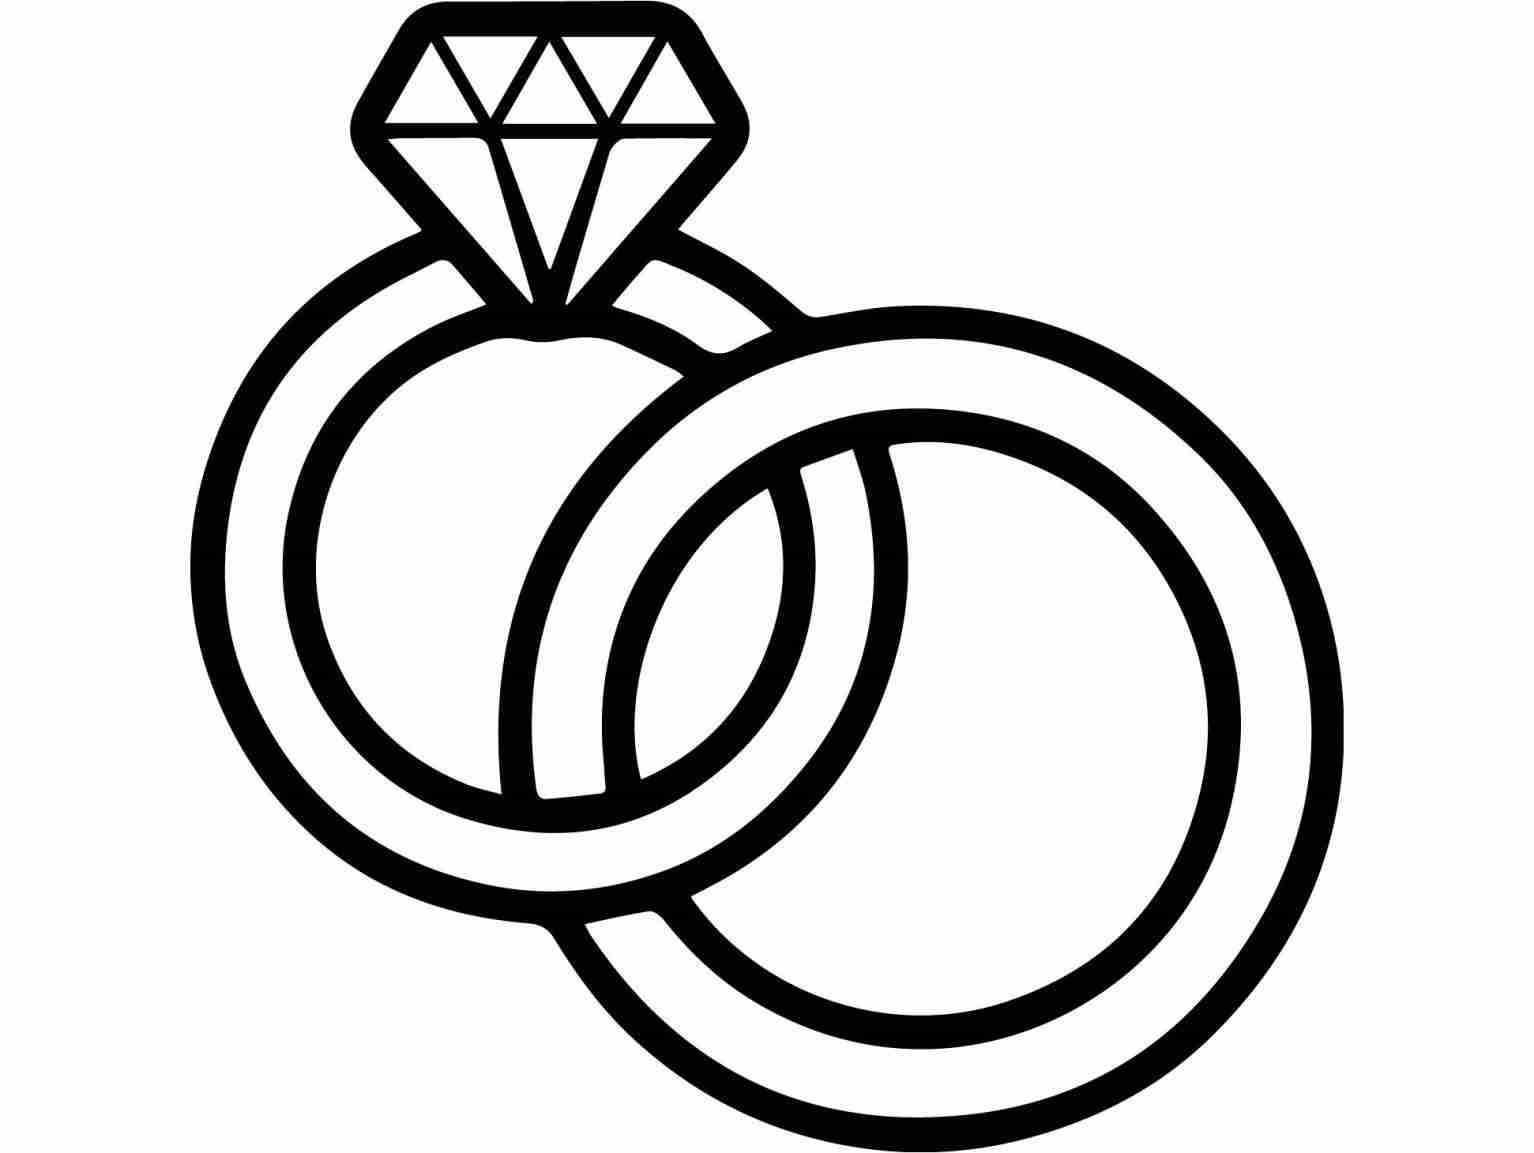 hight resolution of 1534x1153 engagement ring drawing jewelry